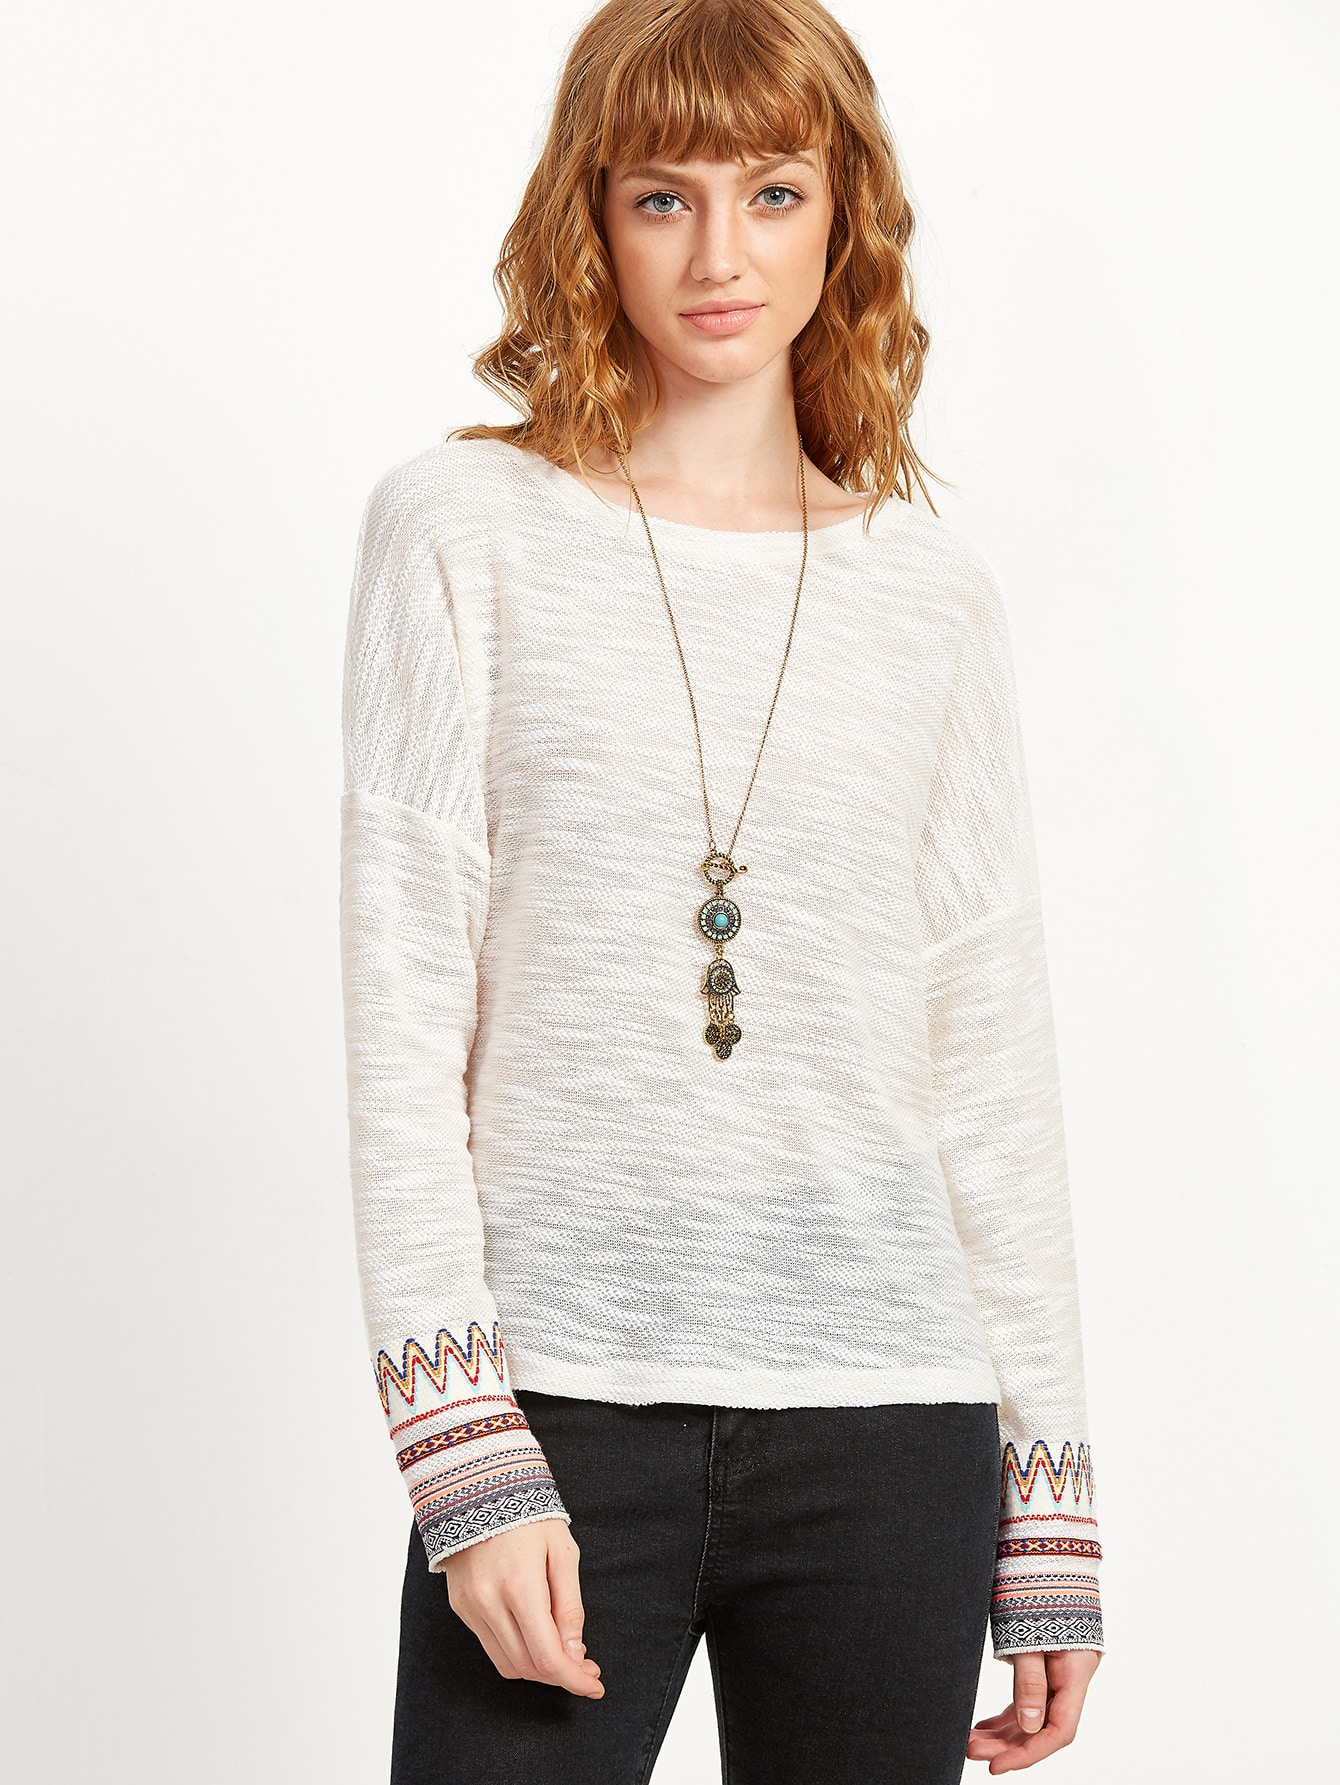 White Drop Shoulder Tribal Pattern Cuff Slub SweaterWhite Drop Shoulder Tribal Pattern Cuff Slub Sweater<br><br>color: White<br>size: L,M,S,XS